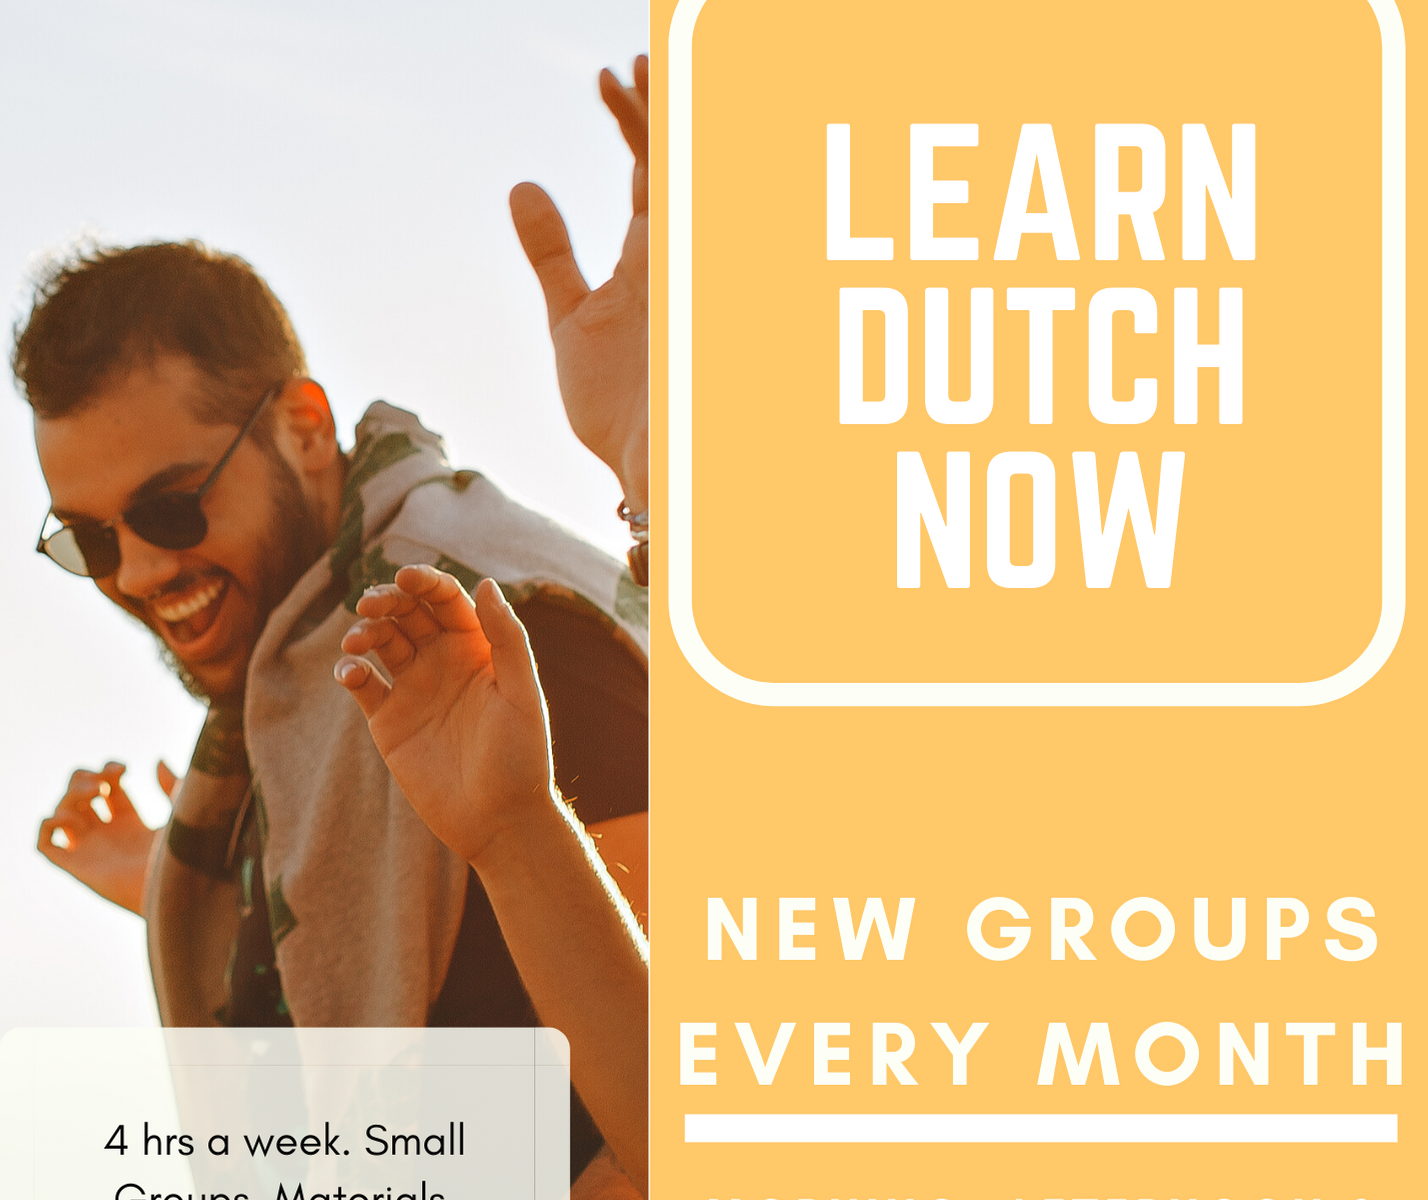 Learn Dutch Now small Dutch group course, learn Dutch in small groups at a university in Amsterdam and other cities in the Netherlands!